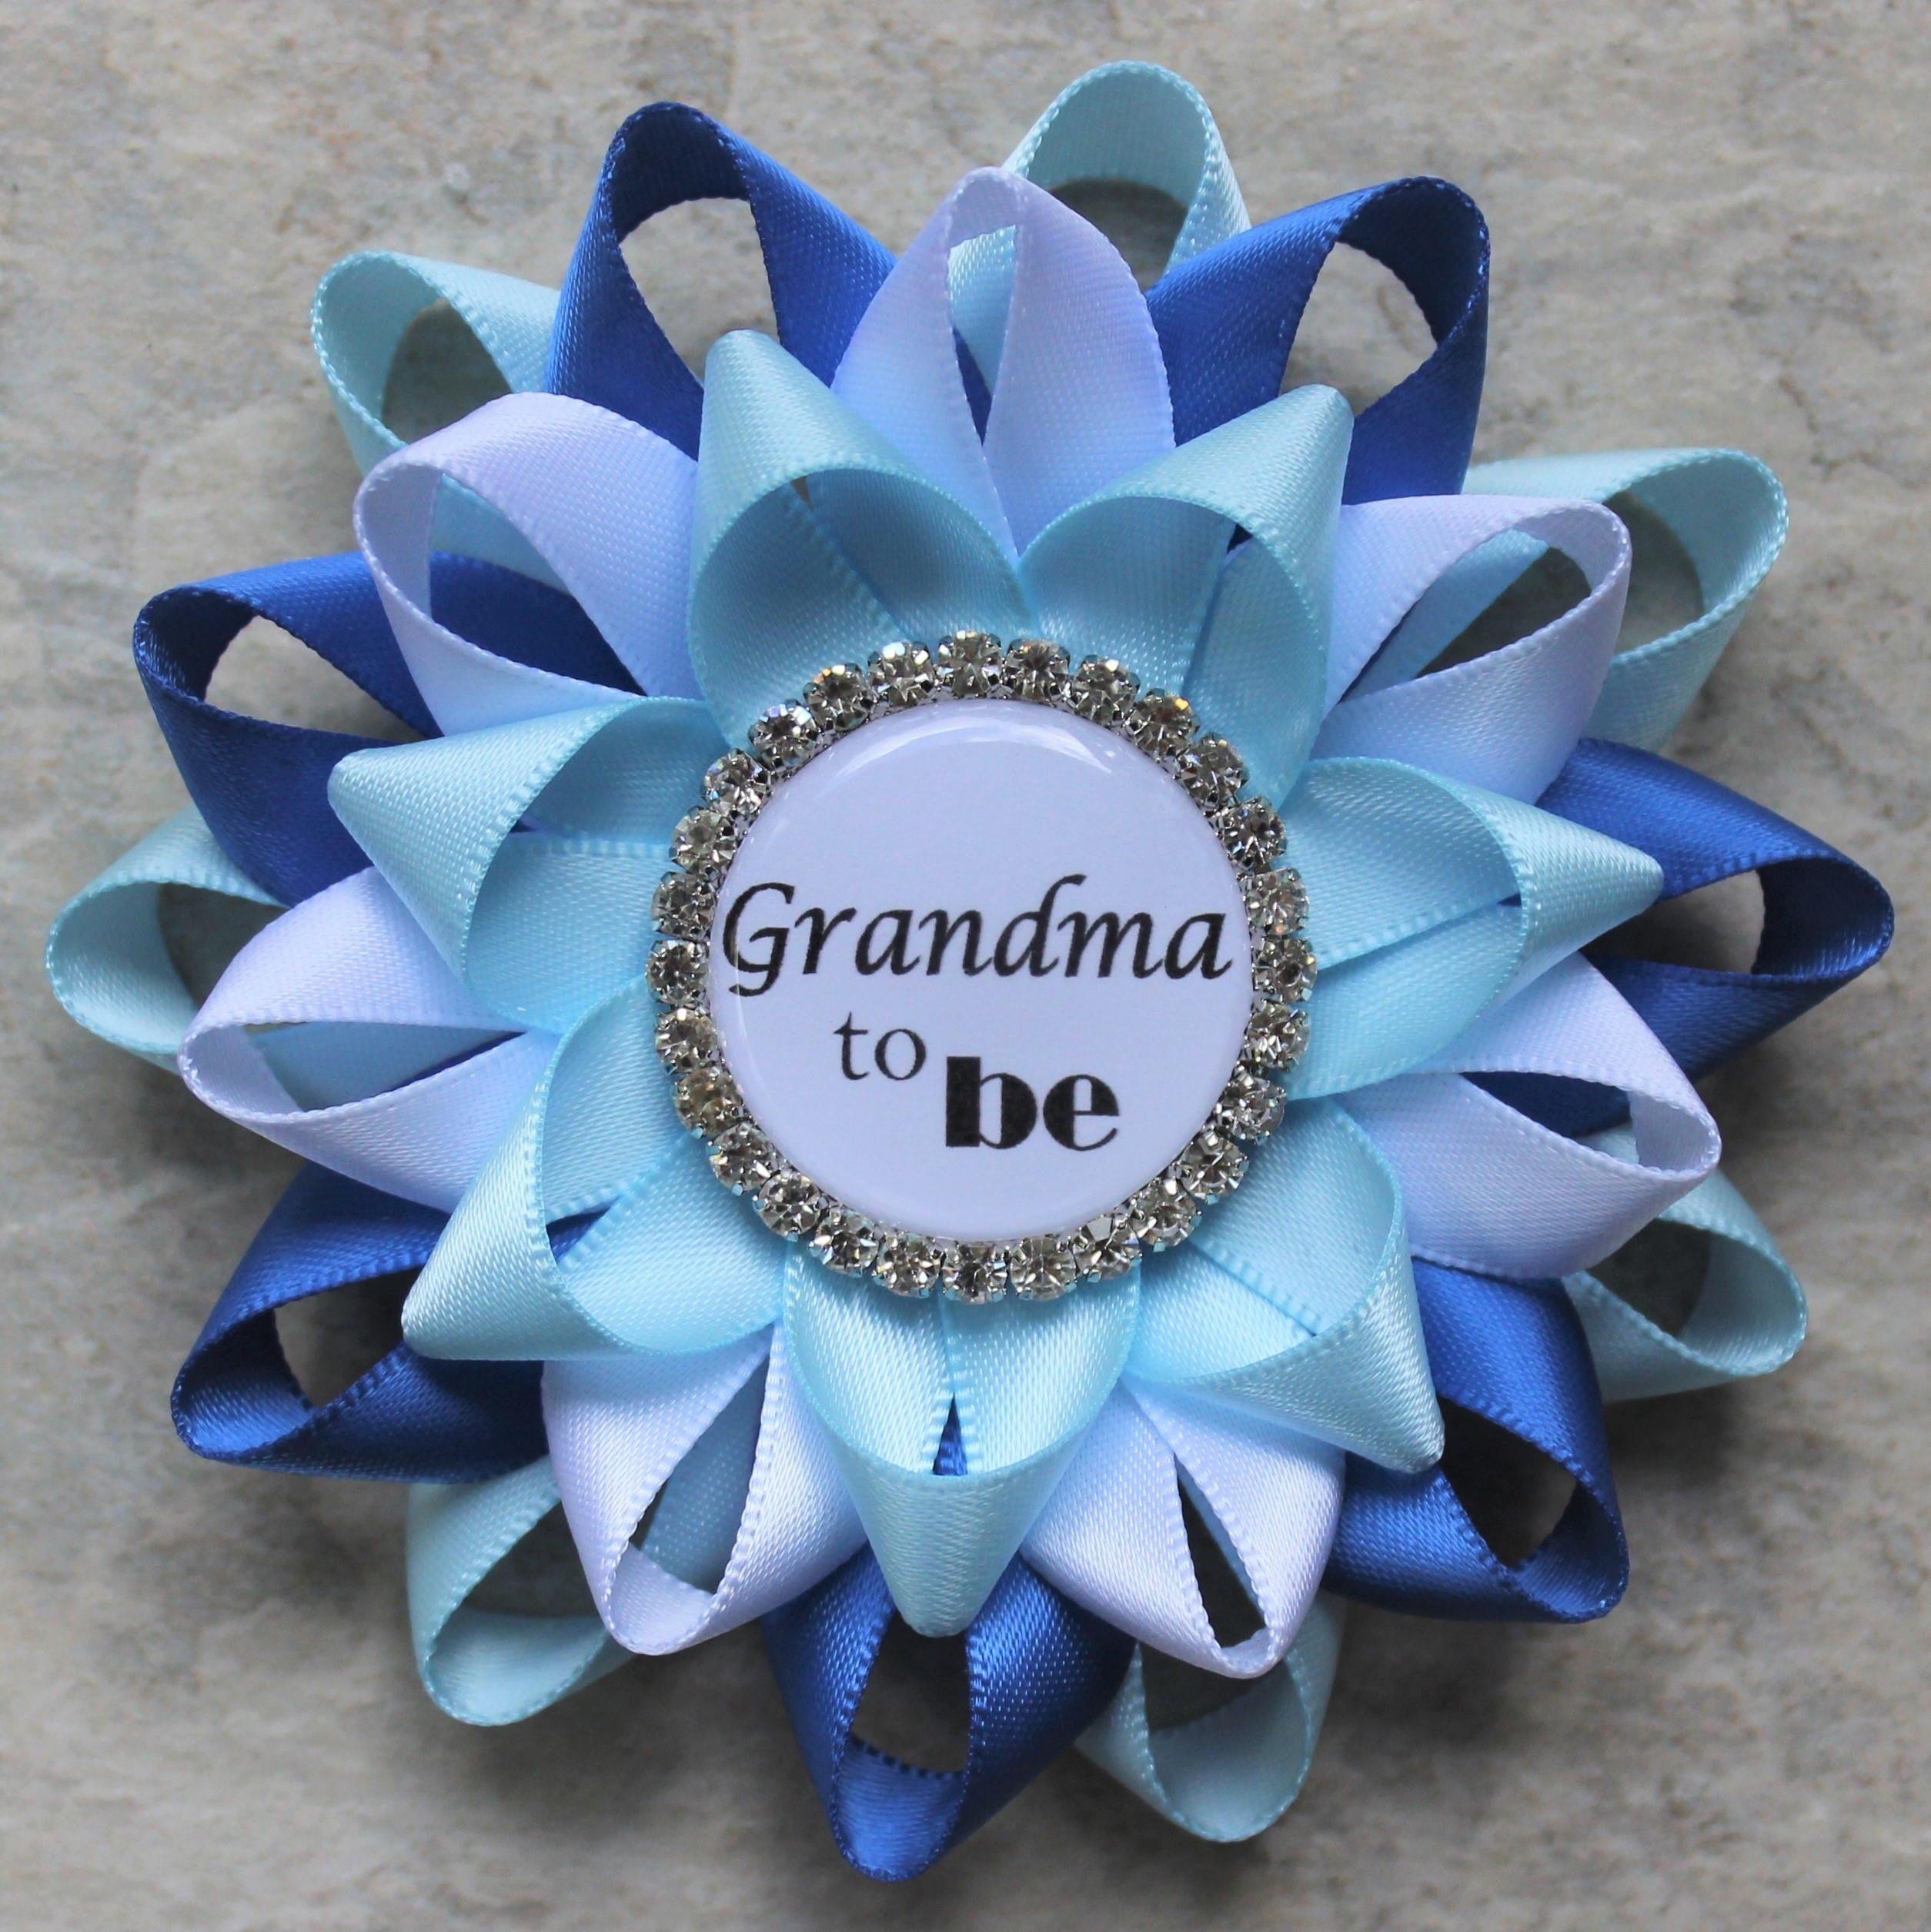 New grandma gift new mommy gift personalized baby shower corsage new grandma gift new mommy gift personalized baby shower corsage pins baby boy shower decorations aunt to be nonna daddy mimi mom negle Image collections